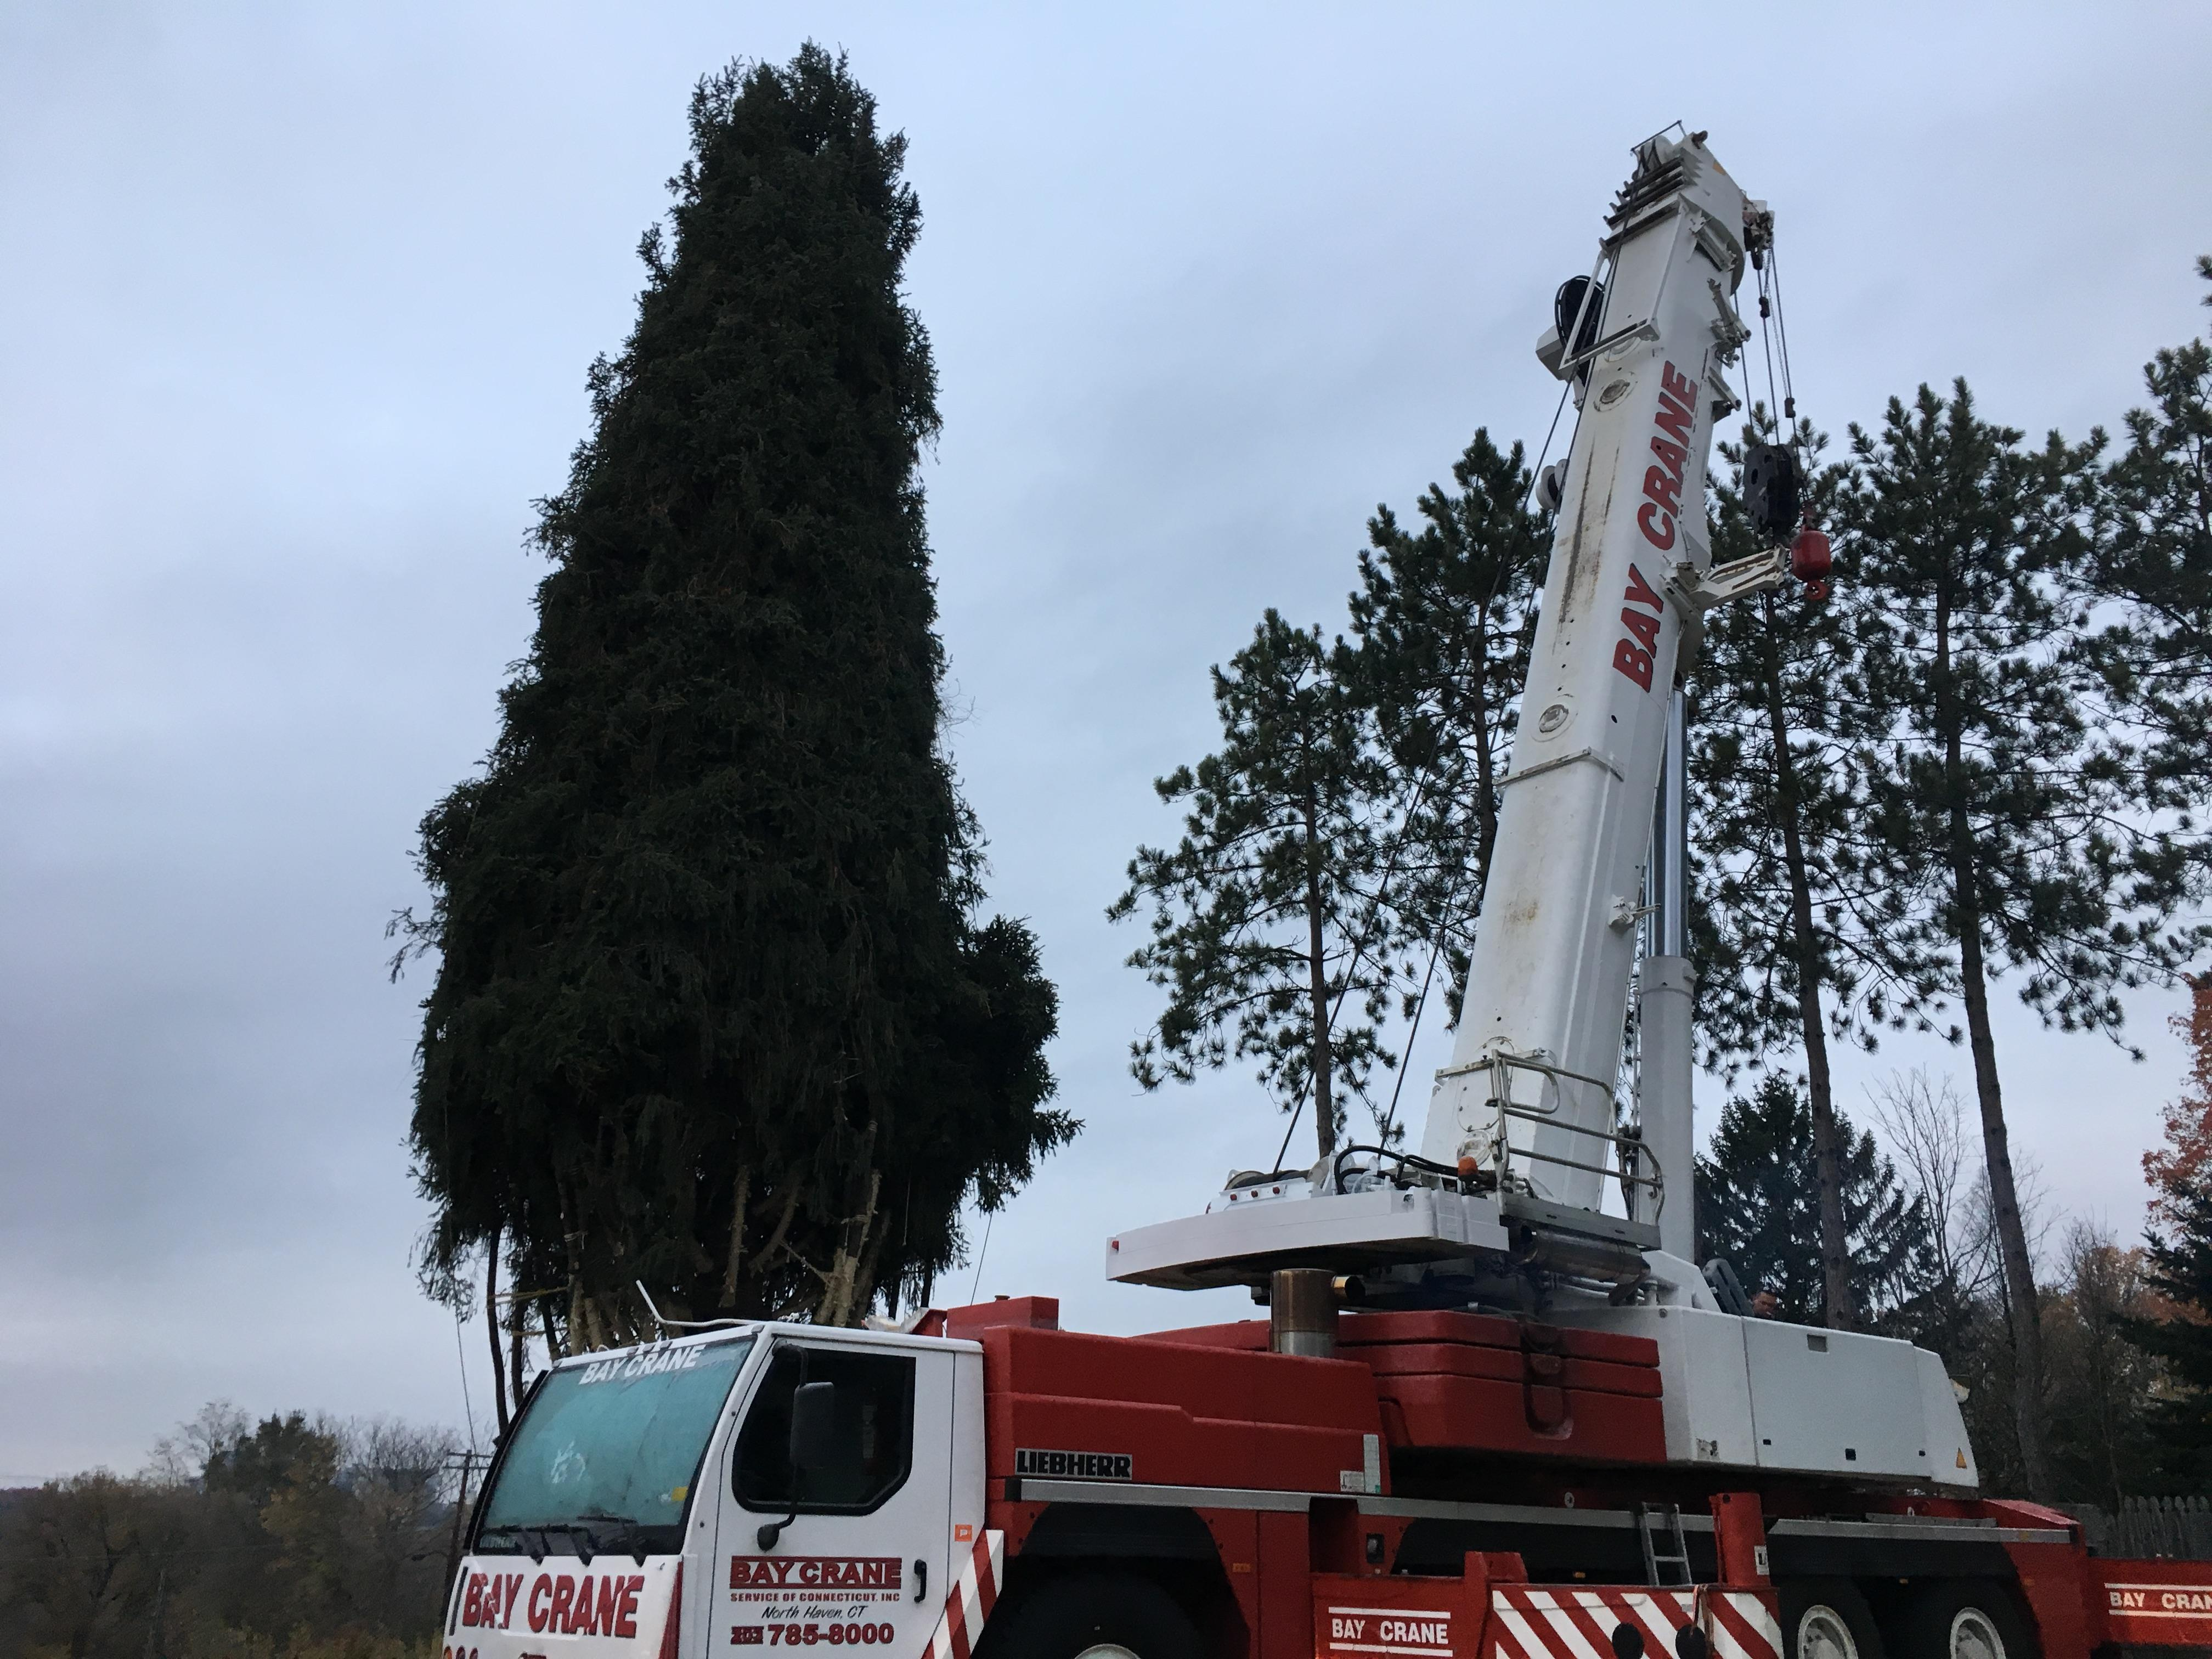 Workers on Thursday will cut down a 75-foot Norway Spruce at the State College home of Jason Perrin that was chosen as the 2017 Rockefeller Center Christmas tree. (WJAC)